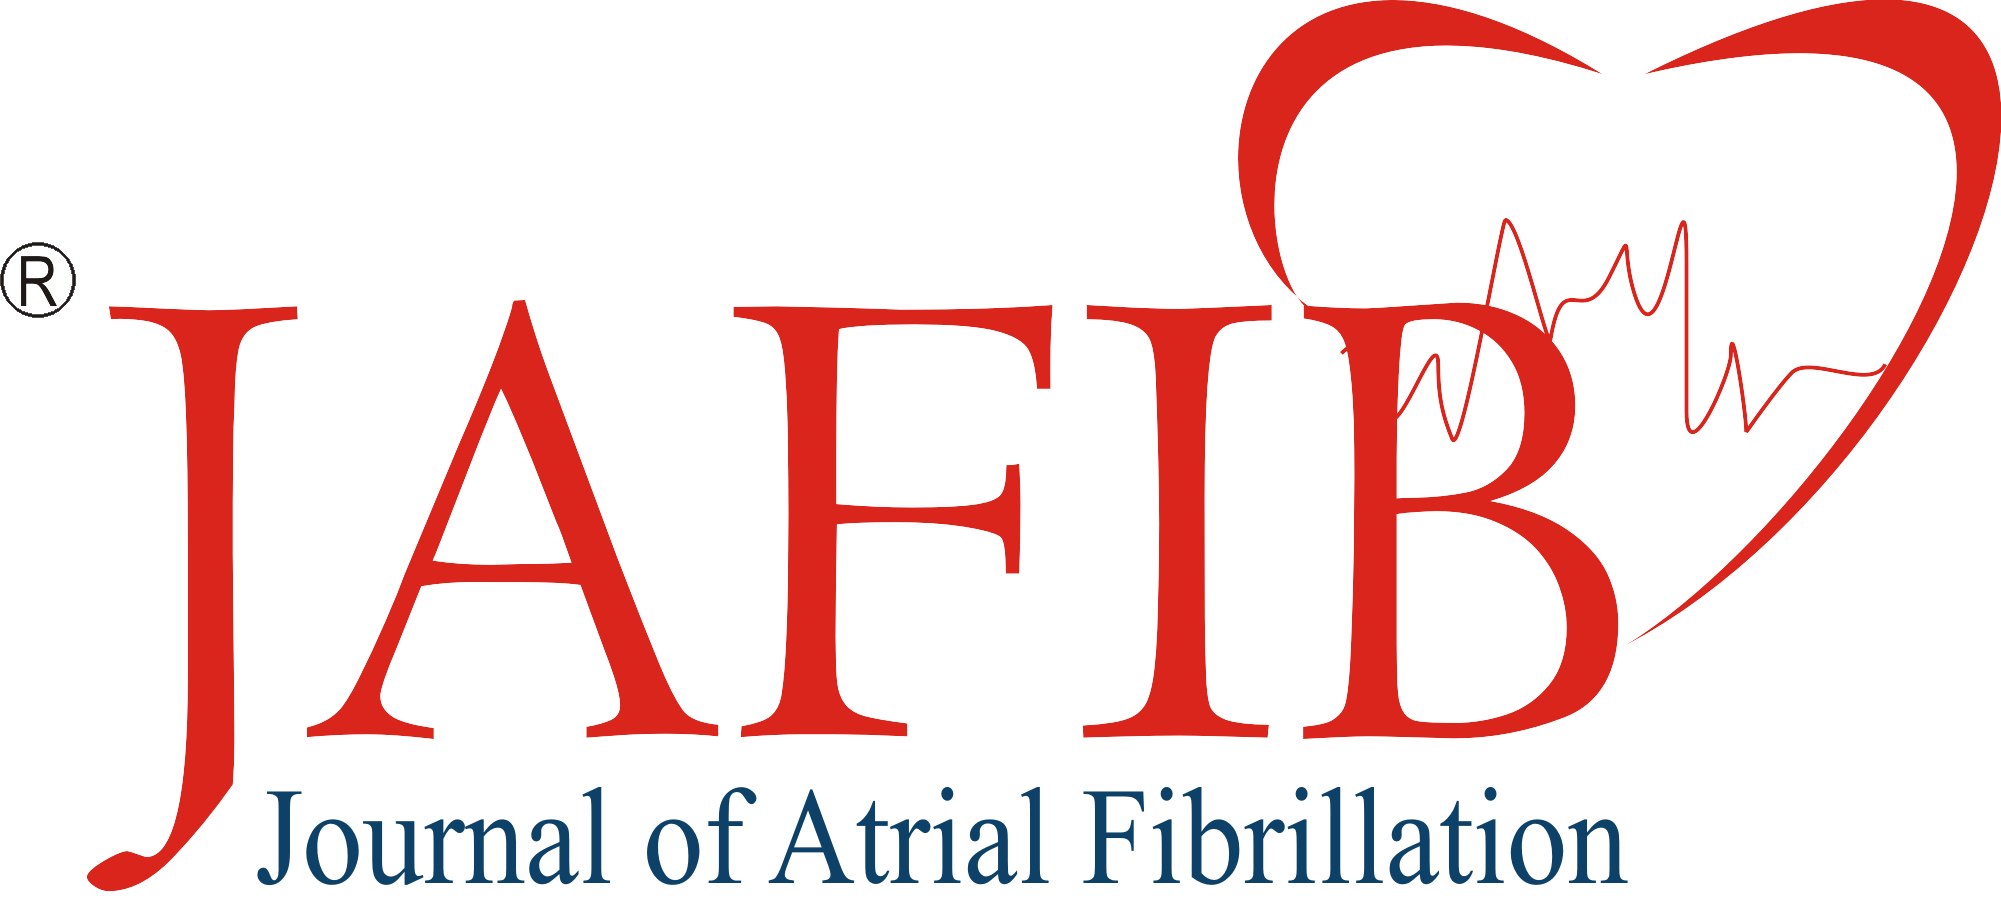 Atrial clip fibrillation. Jafib journal of logo